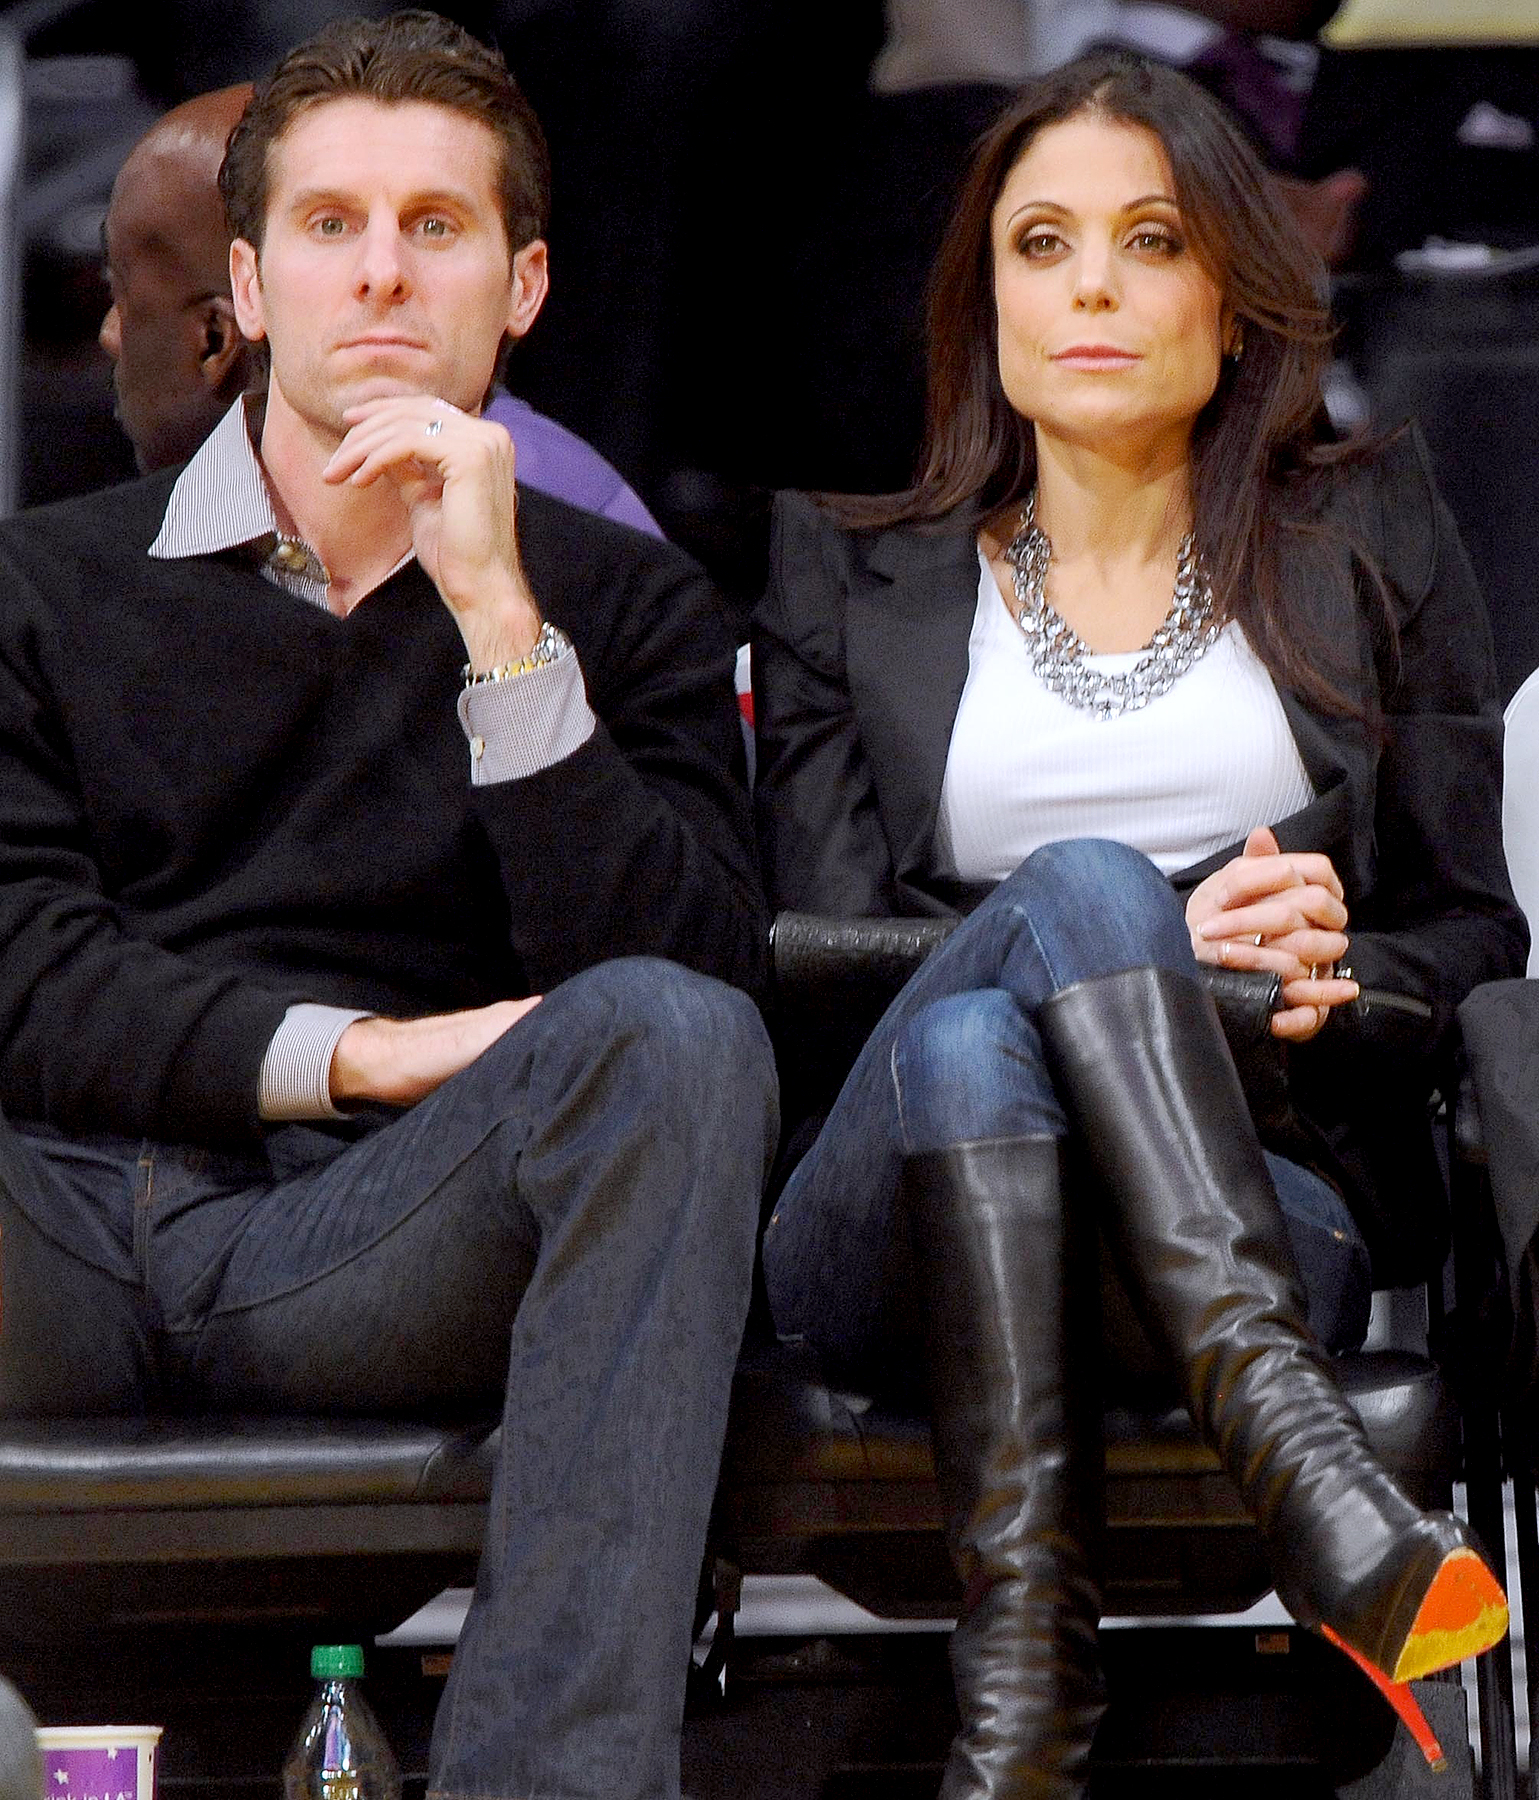 Bethenny Frankel and Jason Hoppy sit courtside as they attend the Los Angeles Lakers/Sacramento Kings NBA game at Staples Center in Los Angeles on December 3, 2010.